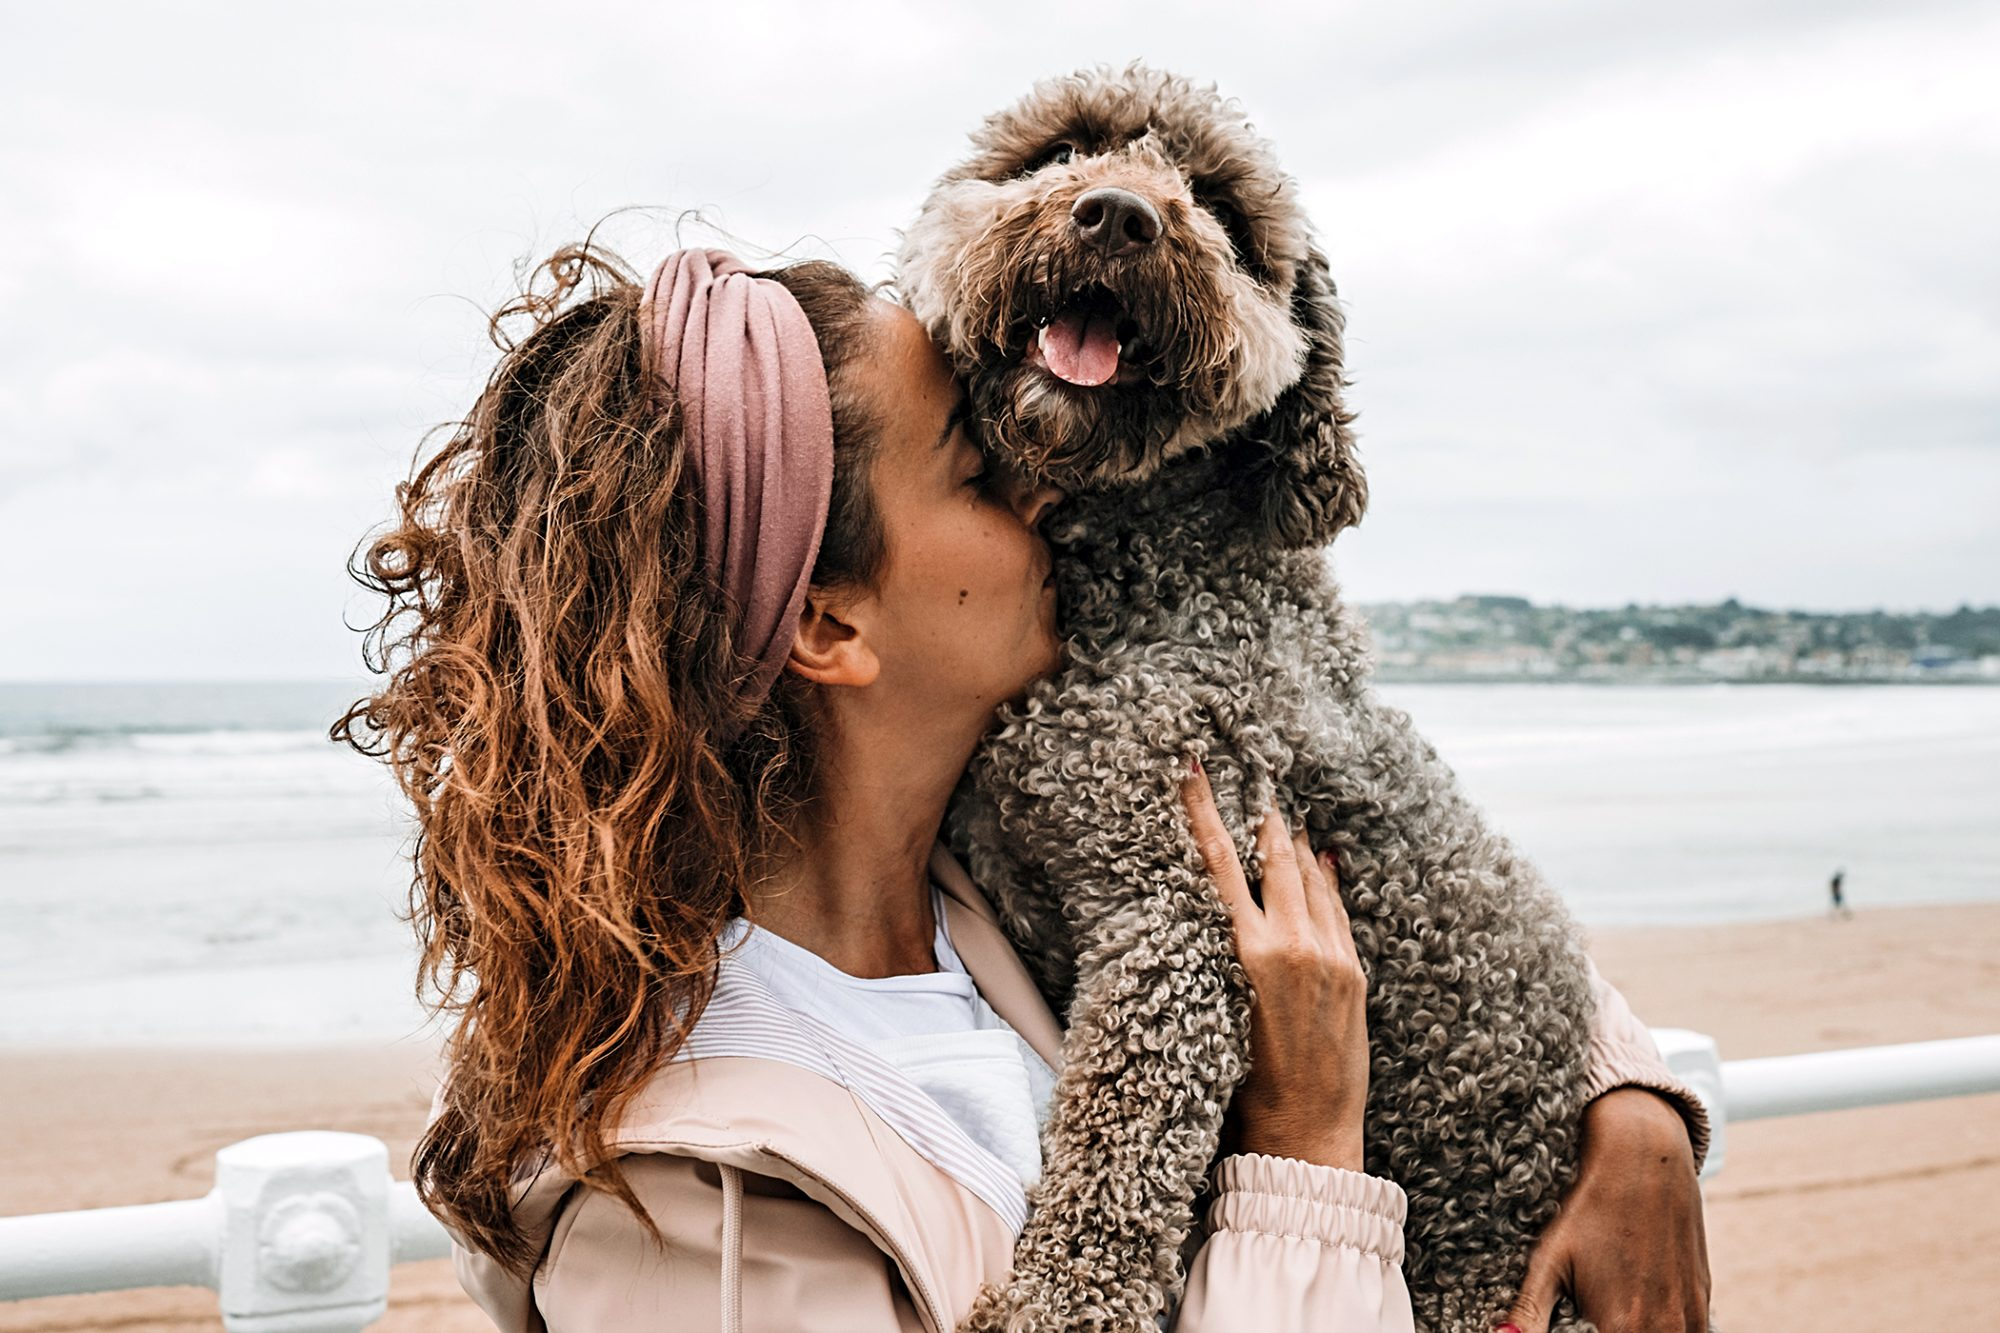 owner holding spanish water dog in her arms at the beach